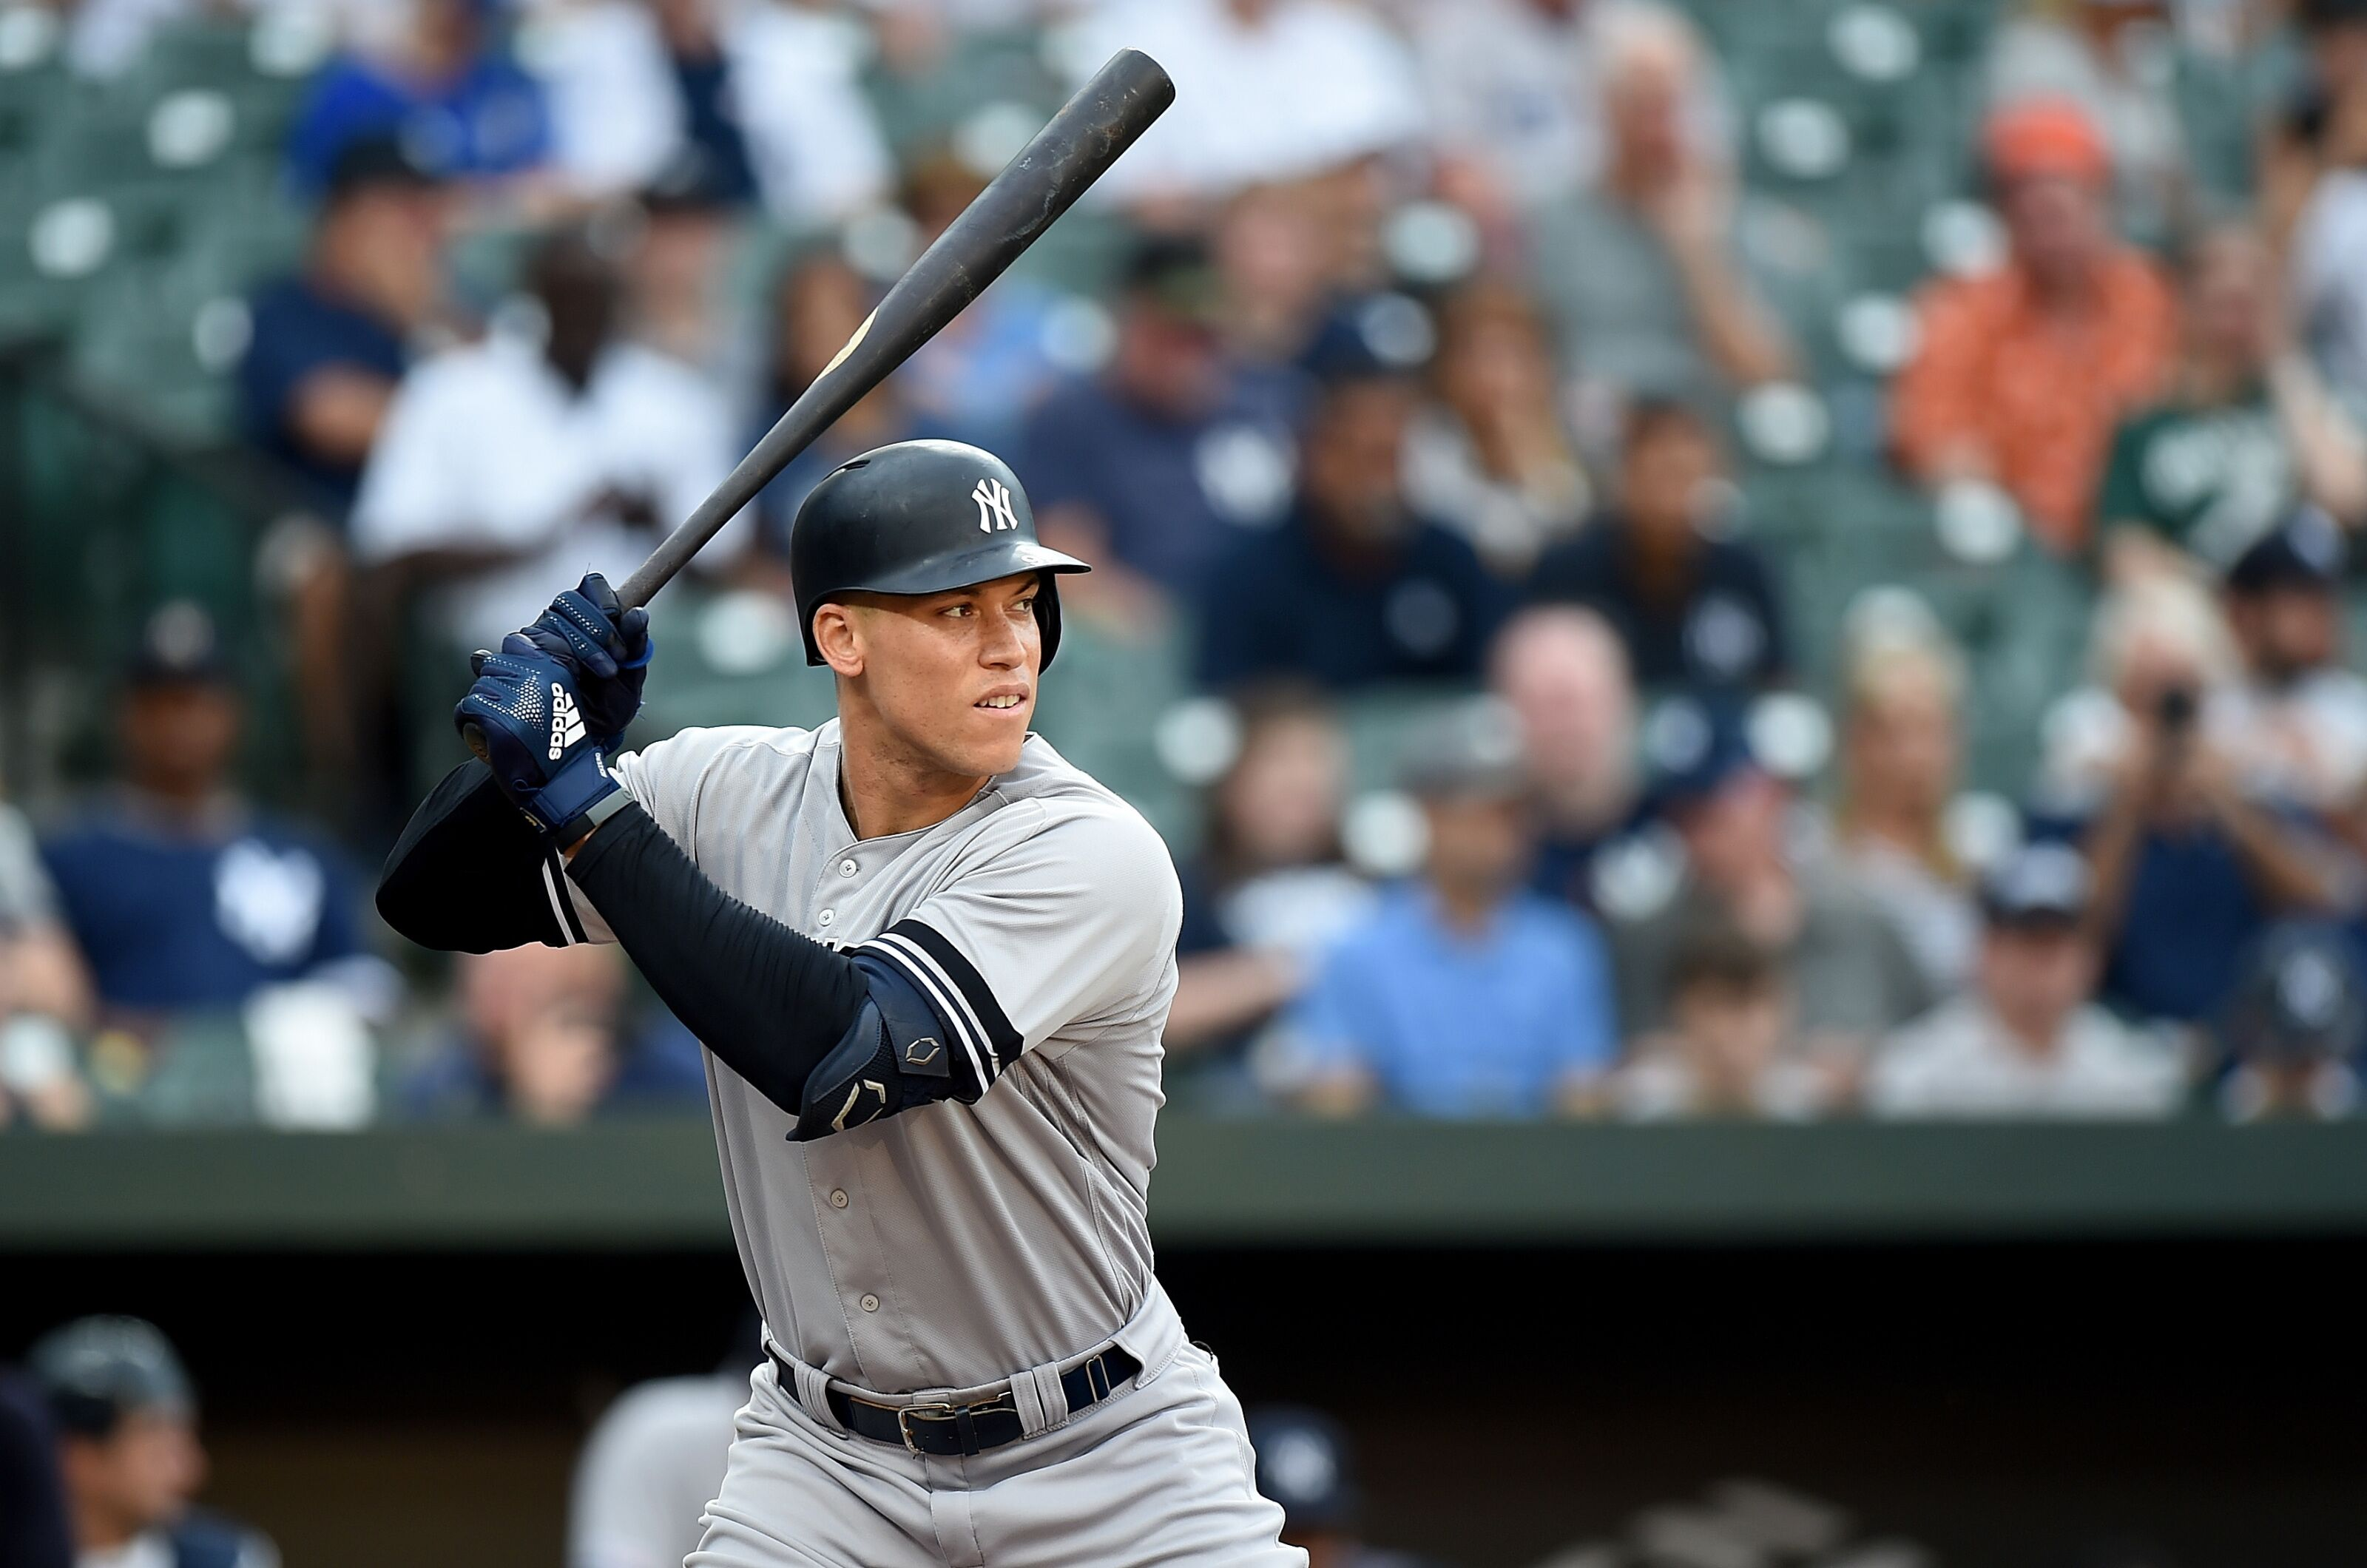 Yankees: Aaron Judge pulls a home run for first time in 2019